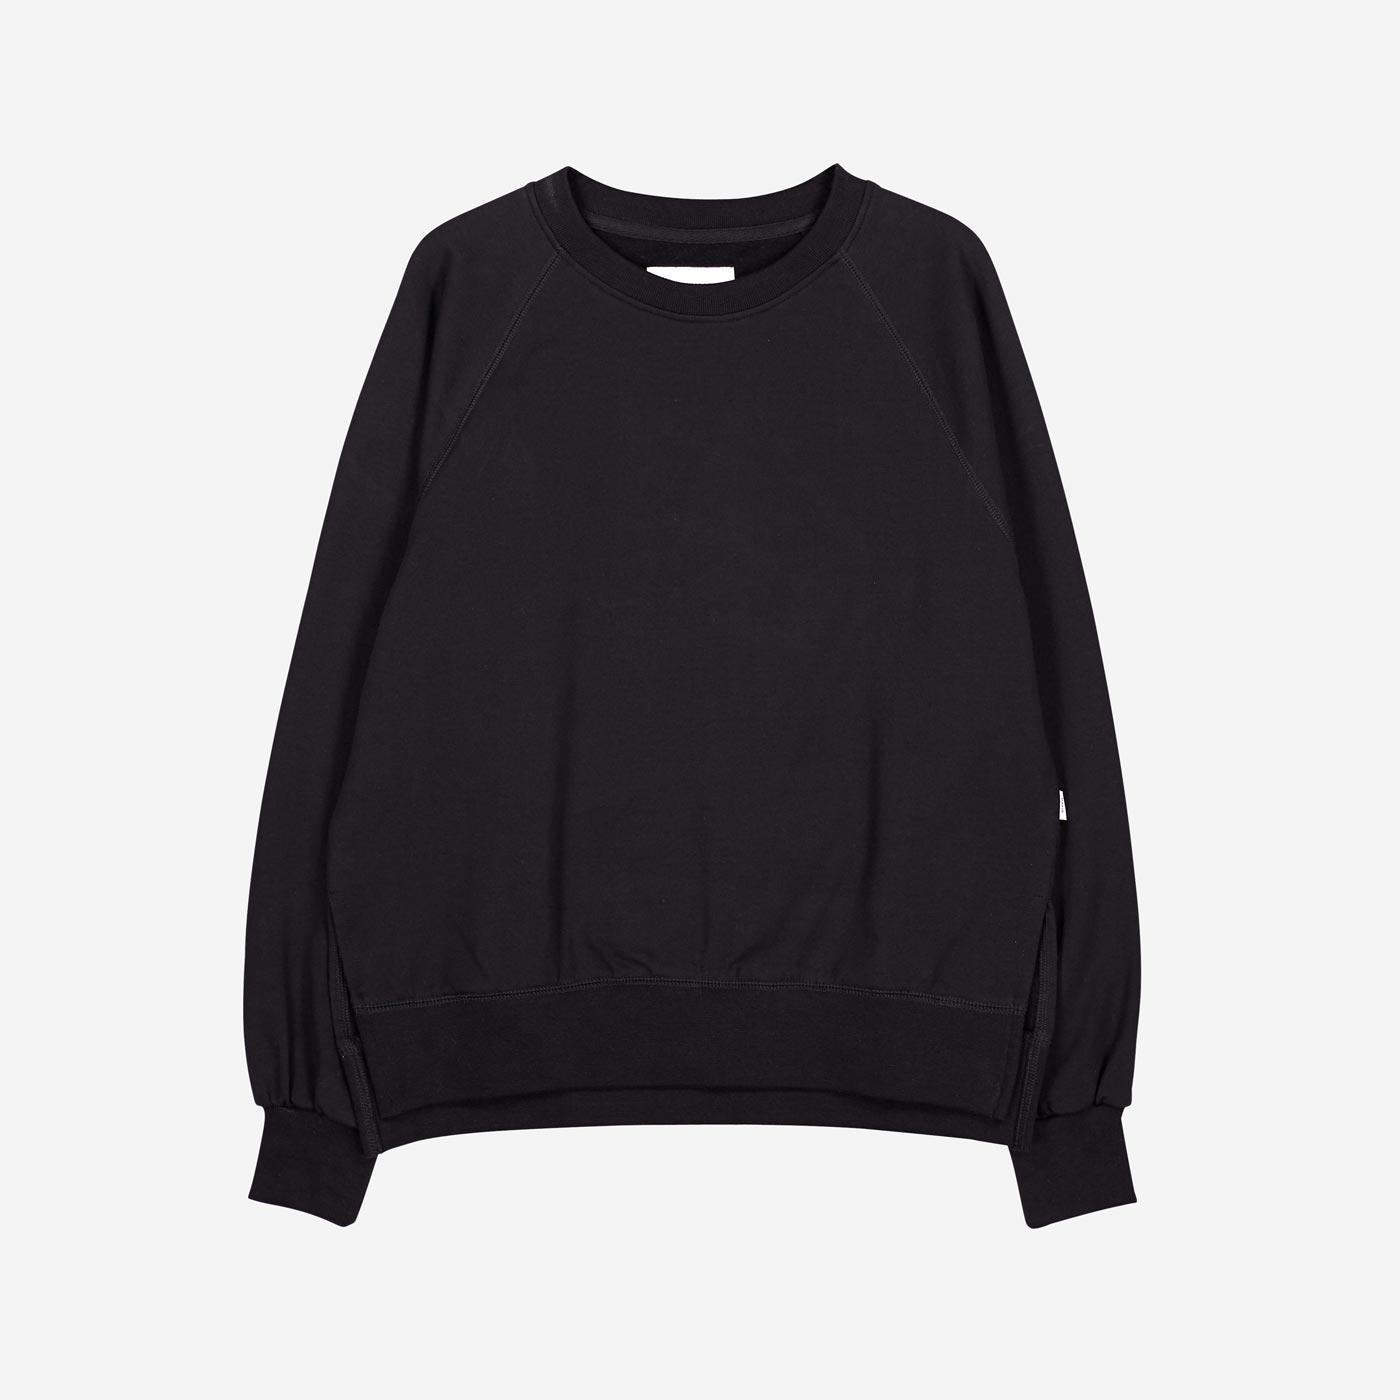 Makia, Etta light sweatshirt - Alava Shop